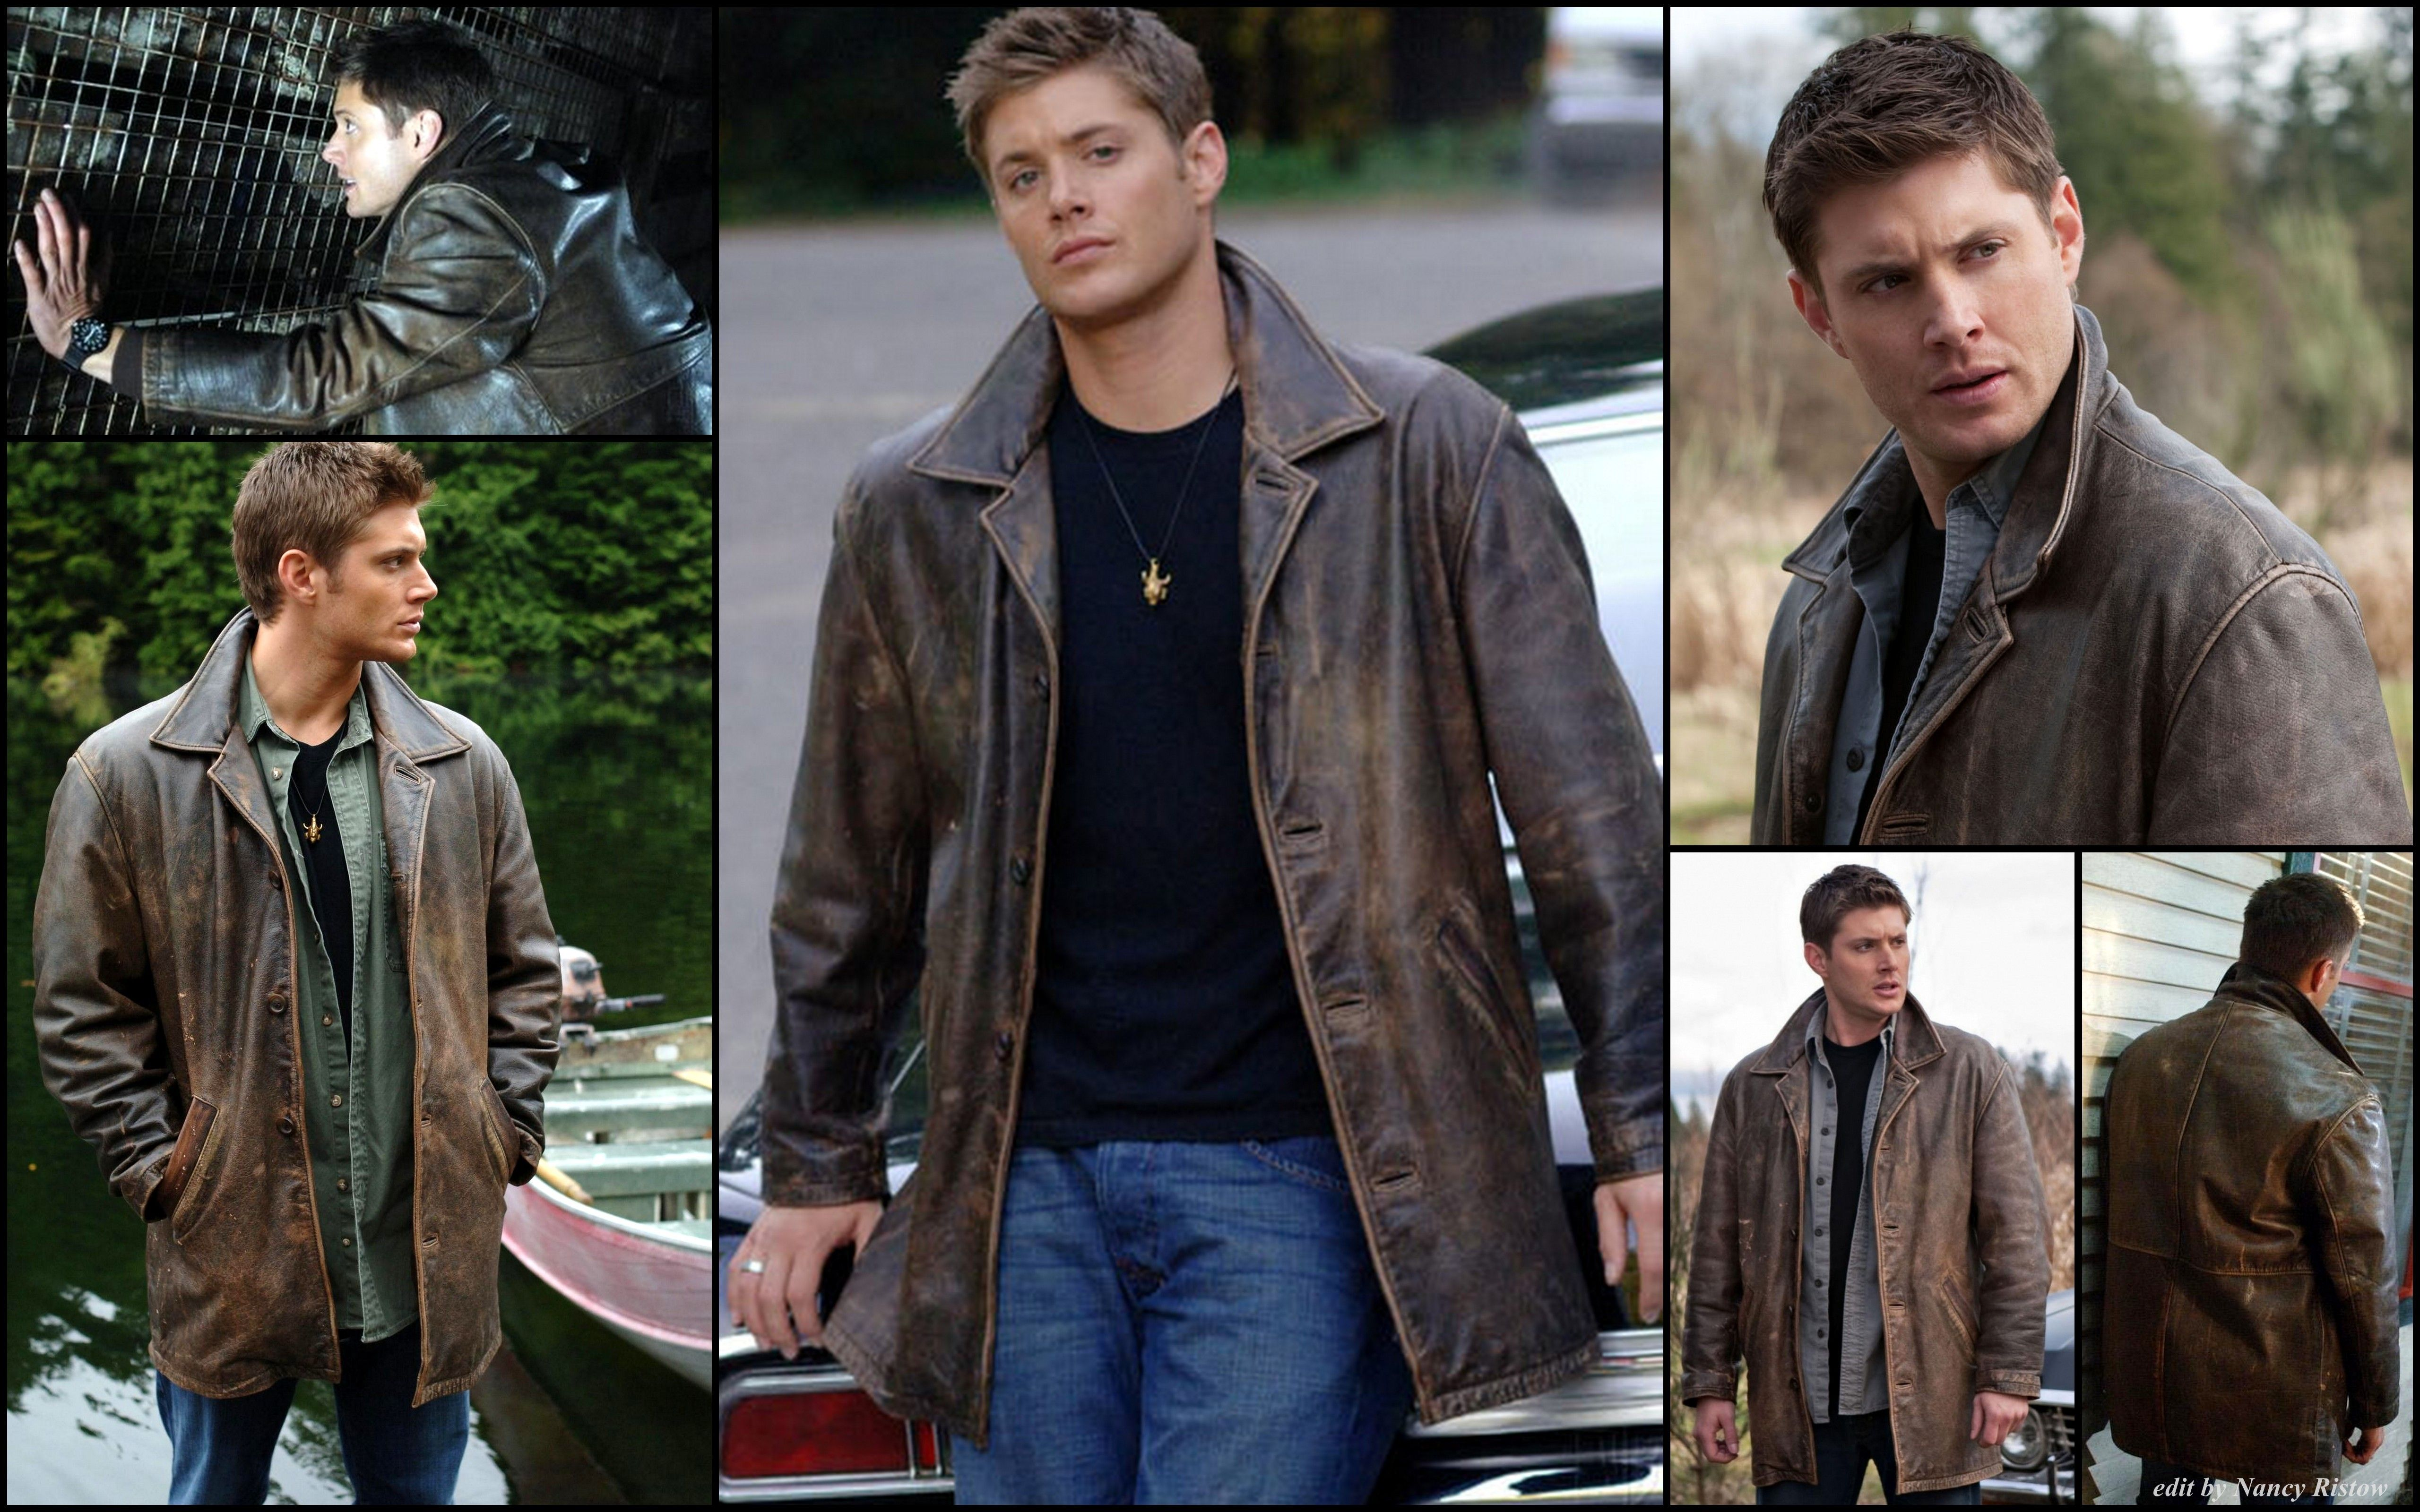 Dean Leather Jacket 1 0 3 Click For Larger Pic Edit By Nancy Rislow Leather Jacket Supernatural Leather Coat [ 3200 x 5120 Pixel ]